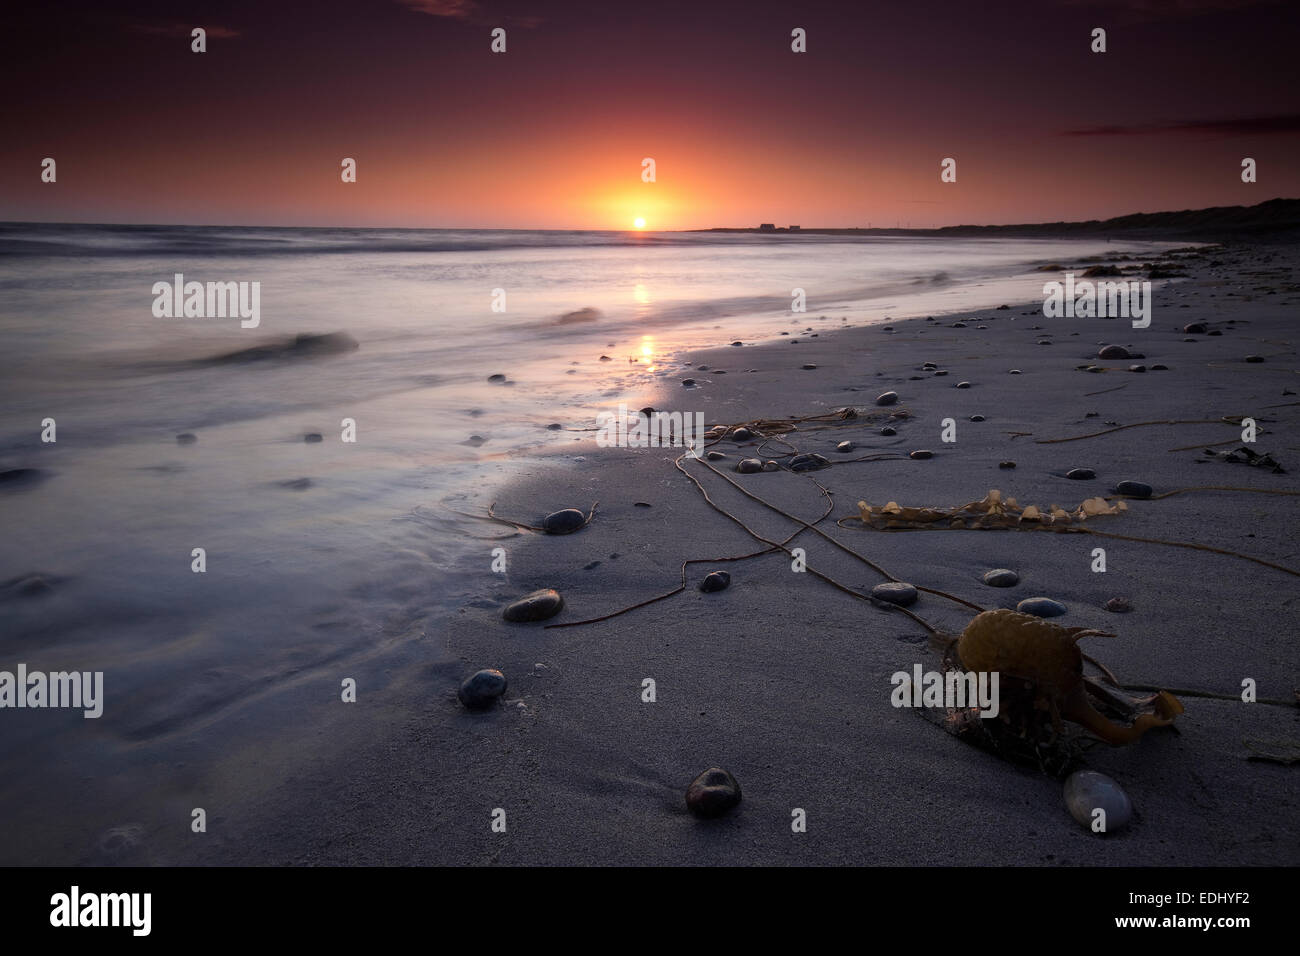 Sunset, beach, Isle of Barra, Outer Hebrides, Scotland, United Kingdom - Stock Image